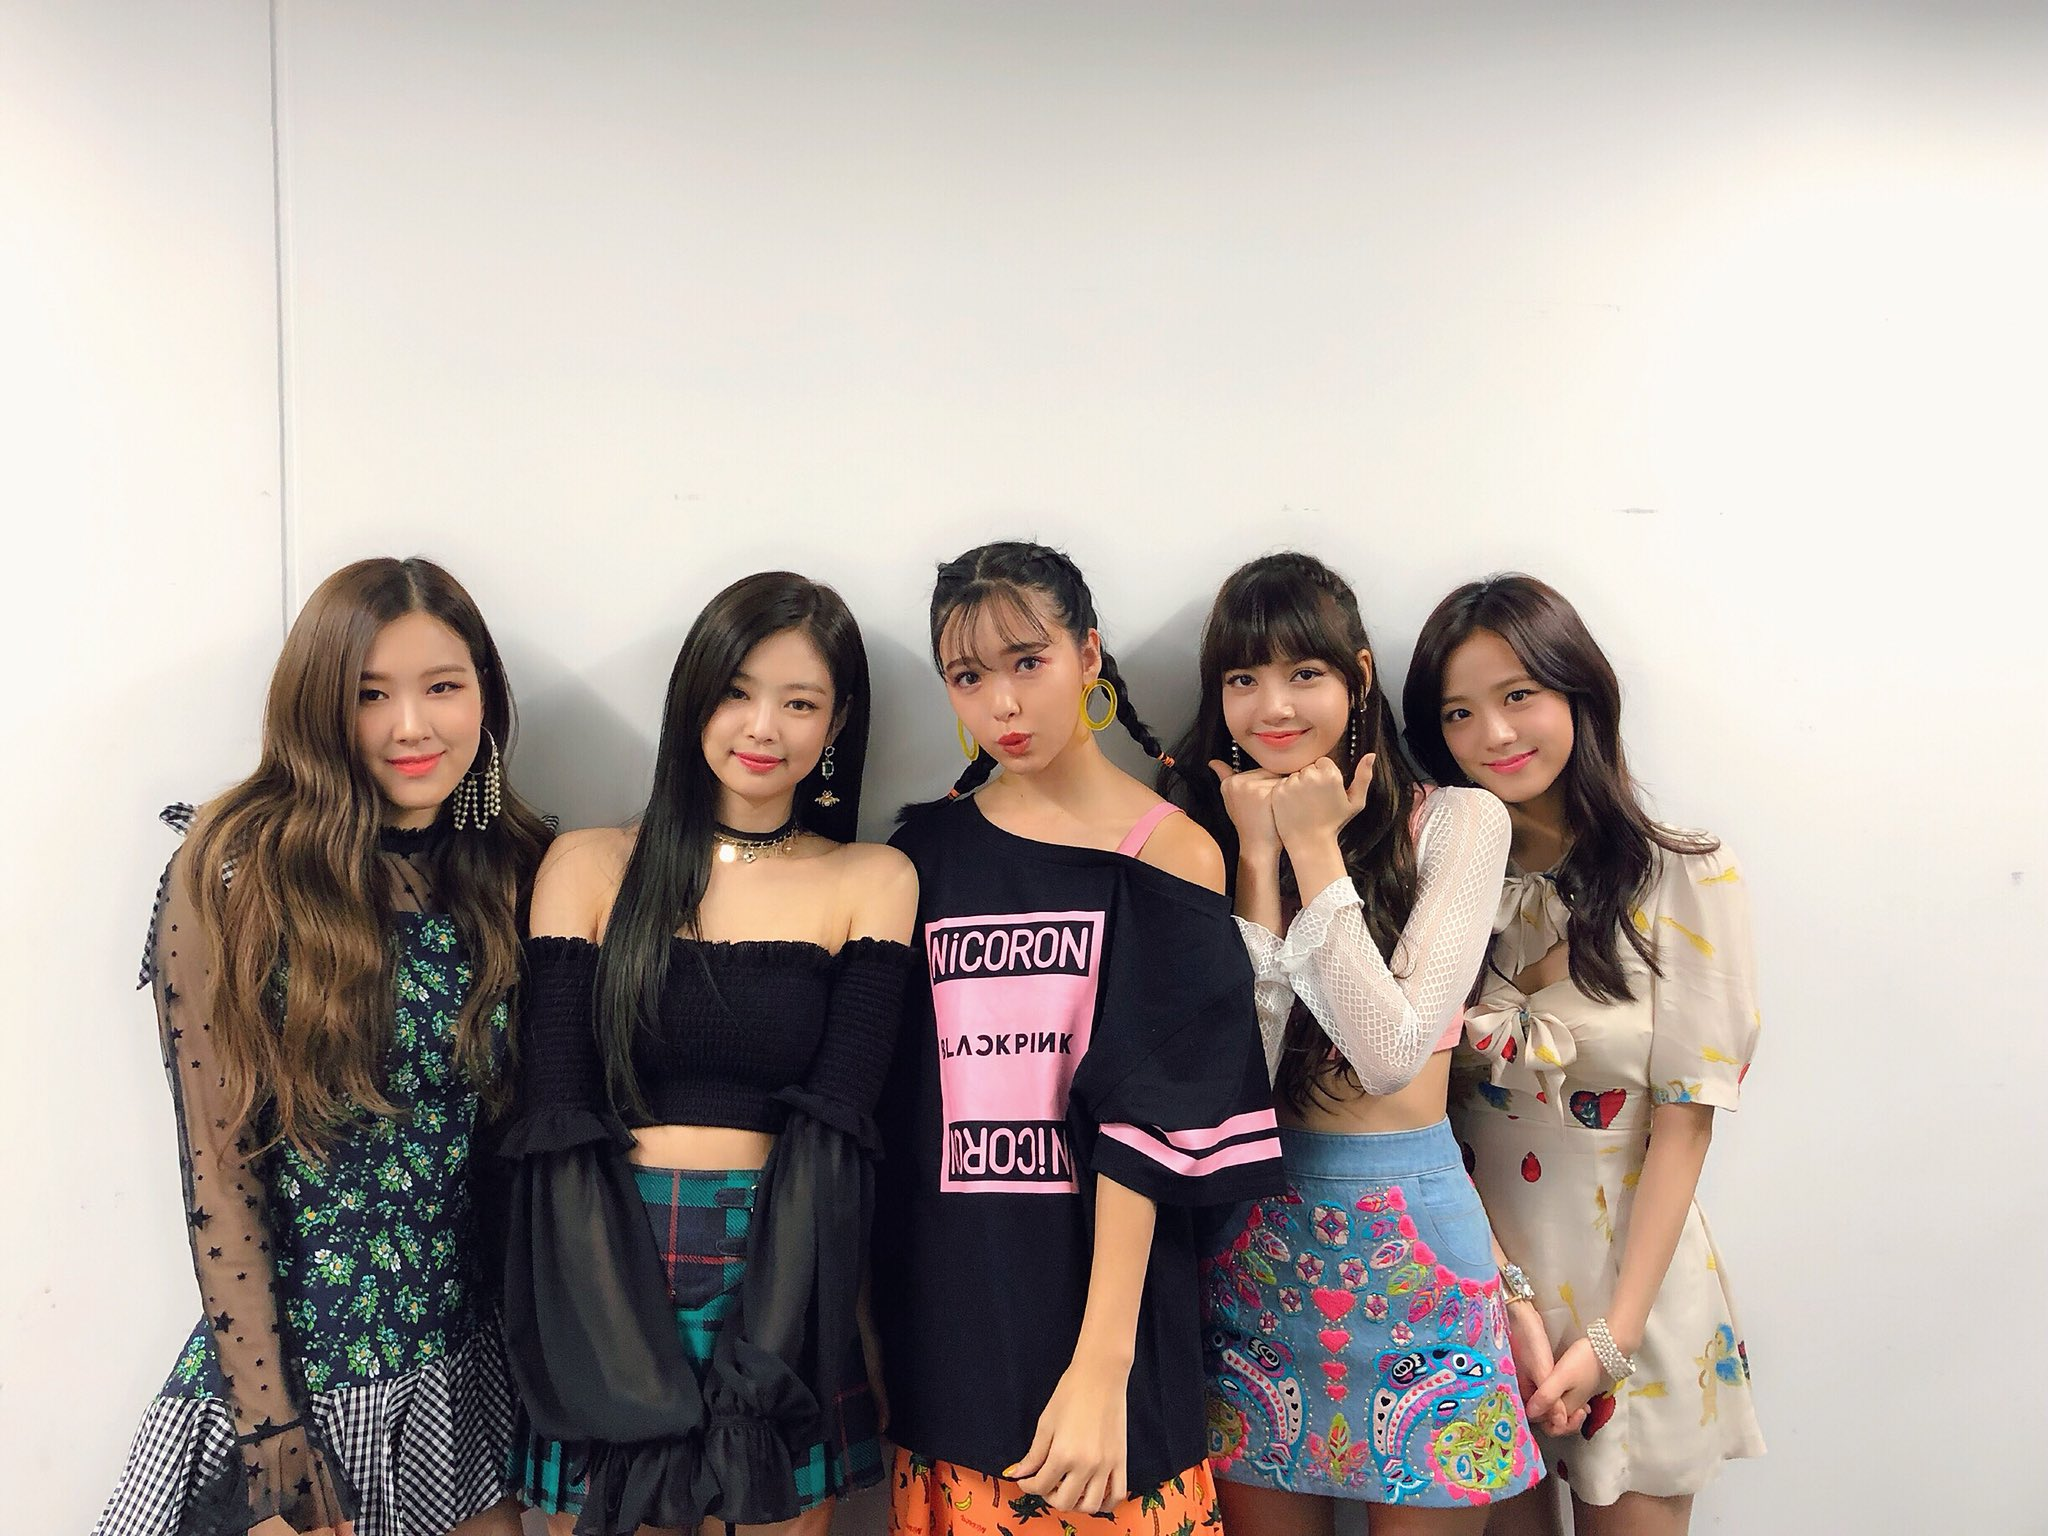 180331 0220nicole With Blackpink Ygdreamers